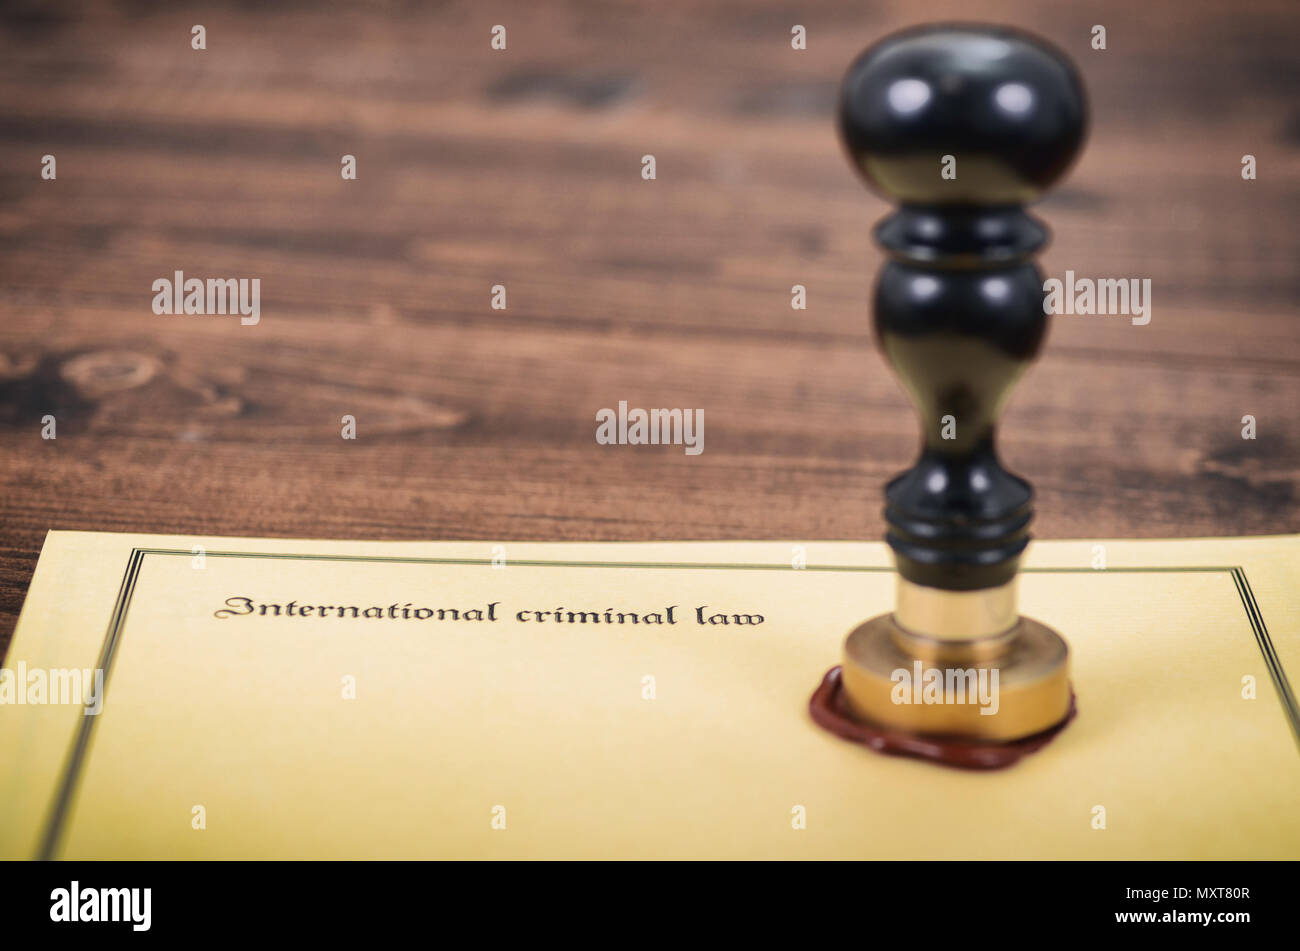 International criminal law, legality concept, notary seal, law and justice concept. - Stock Image